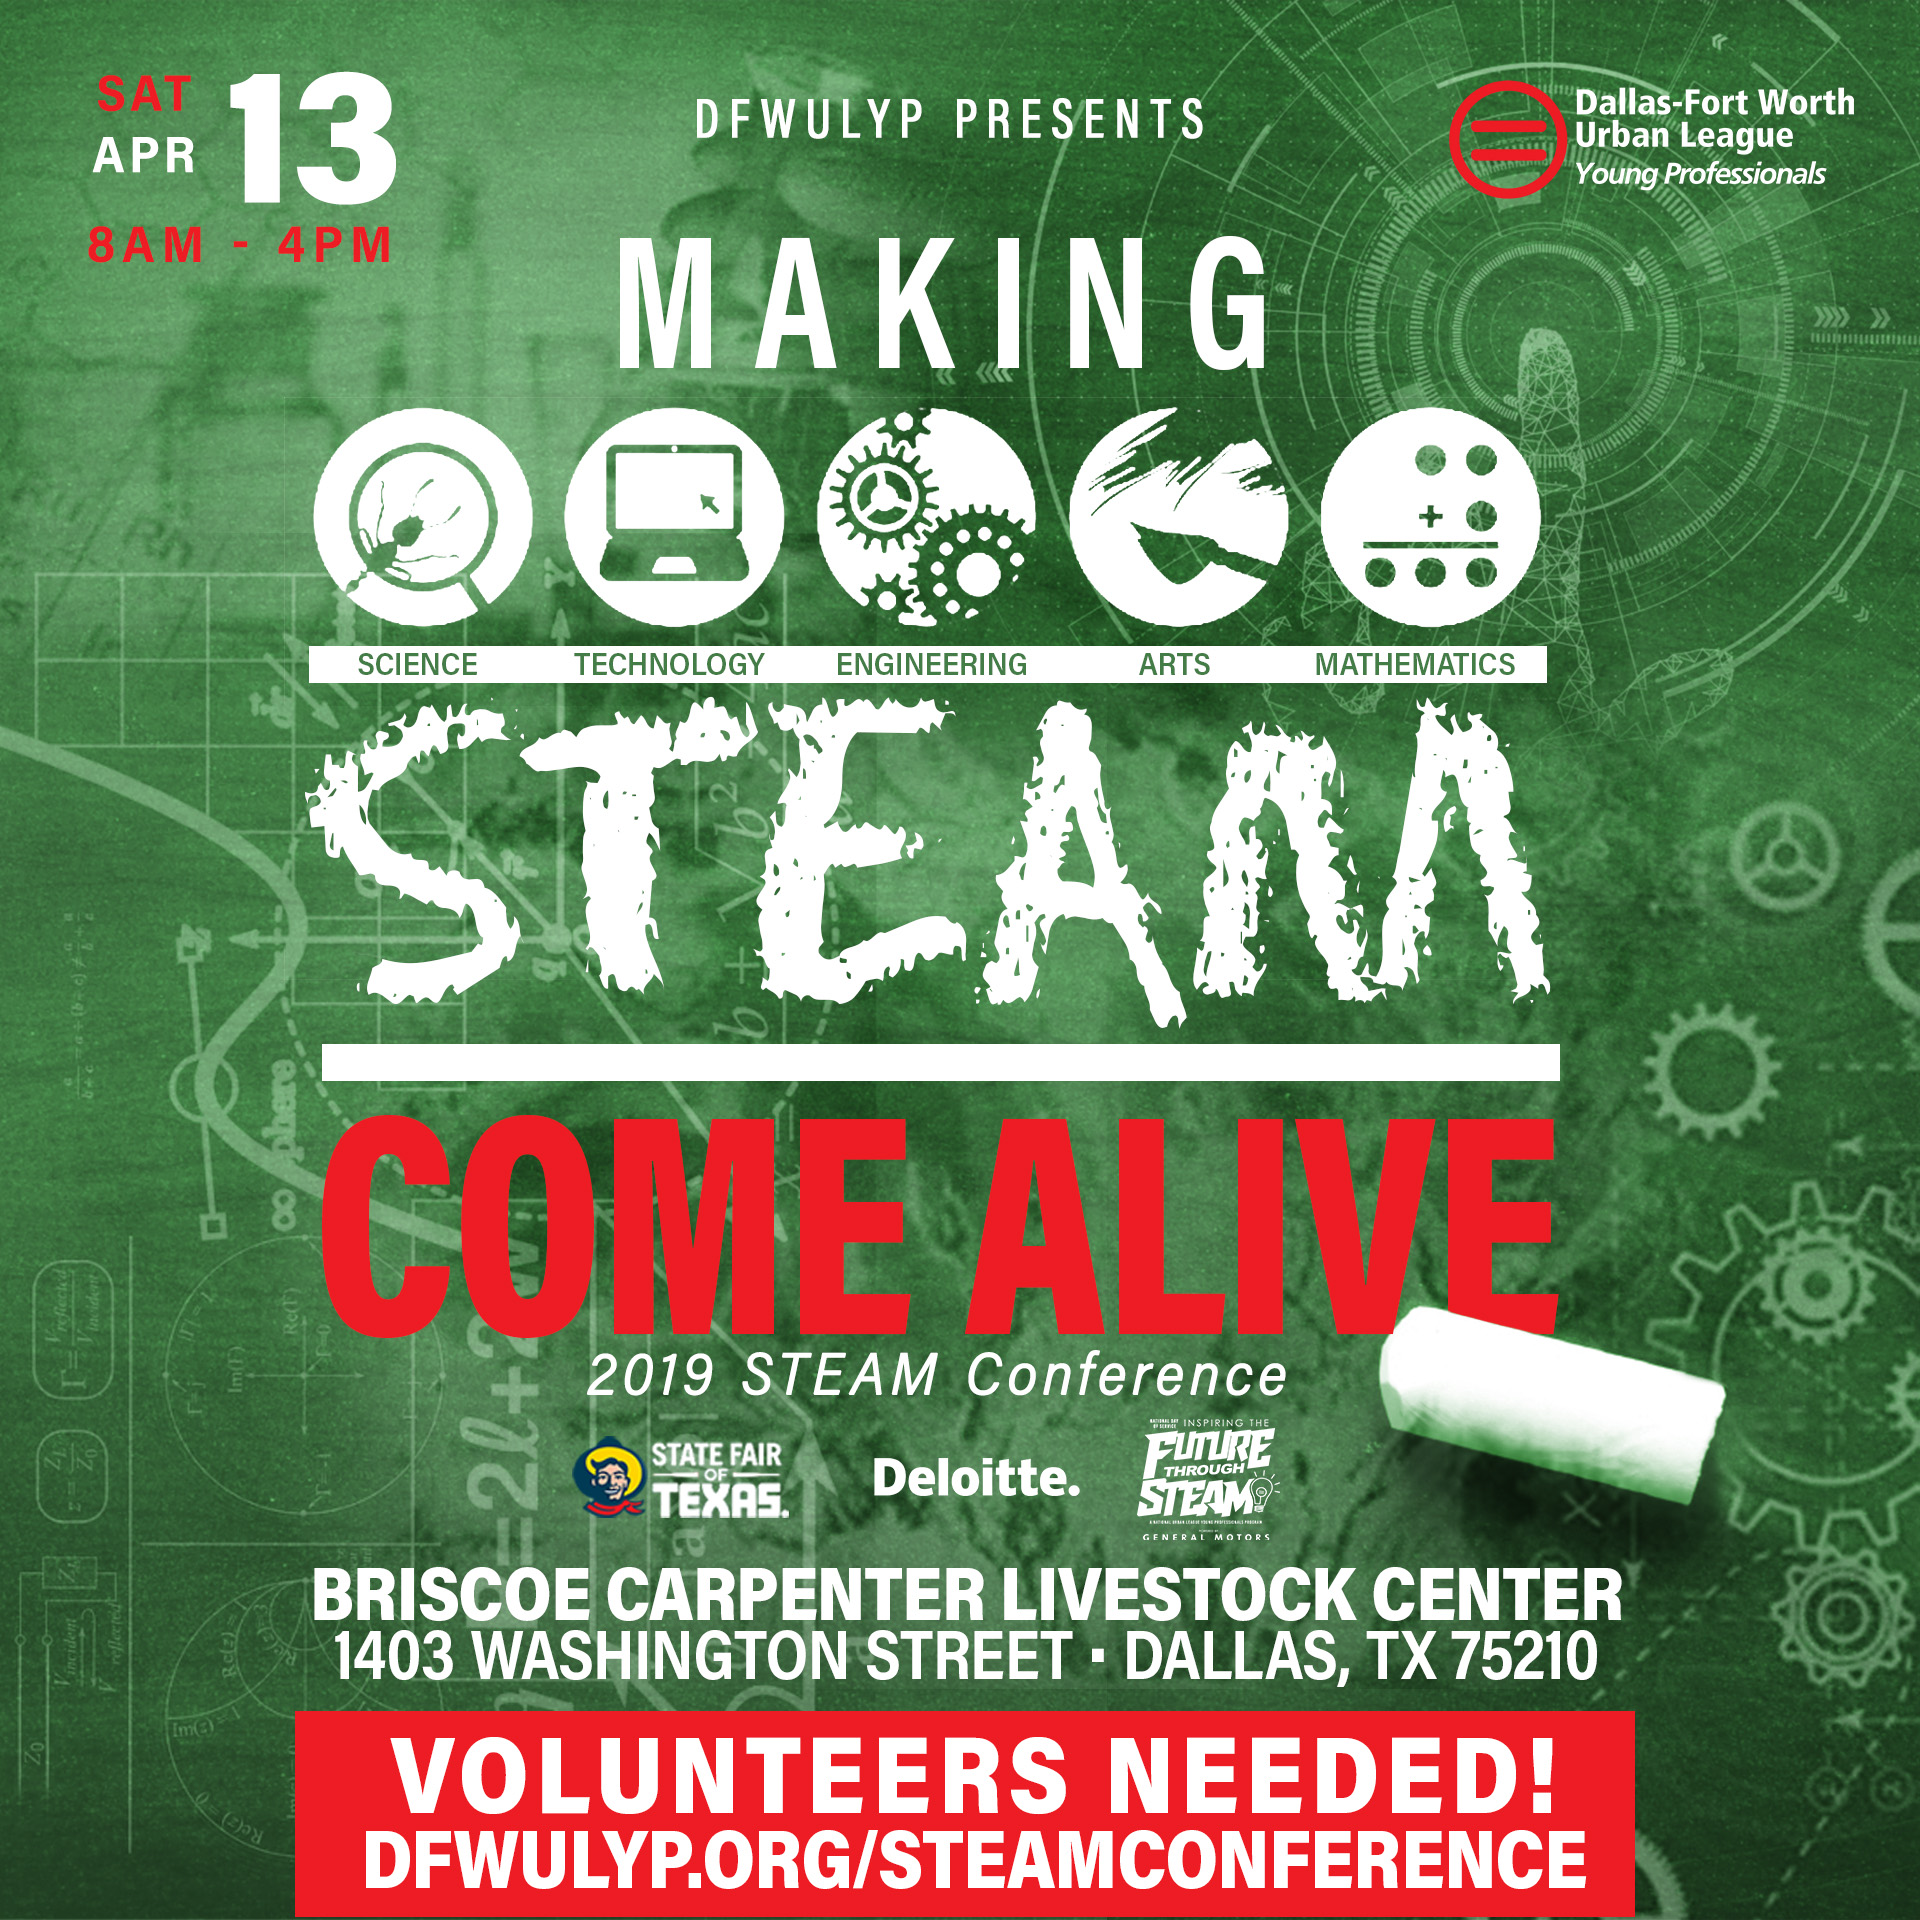 DFWULYP-STEAM-Volunteer.jpg